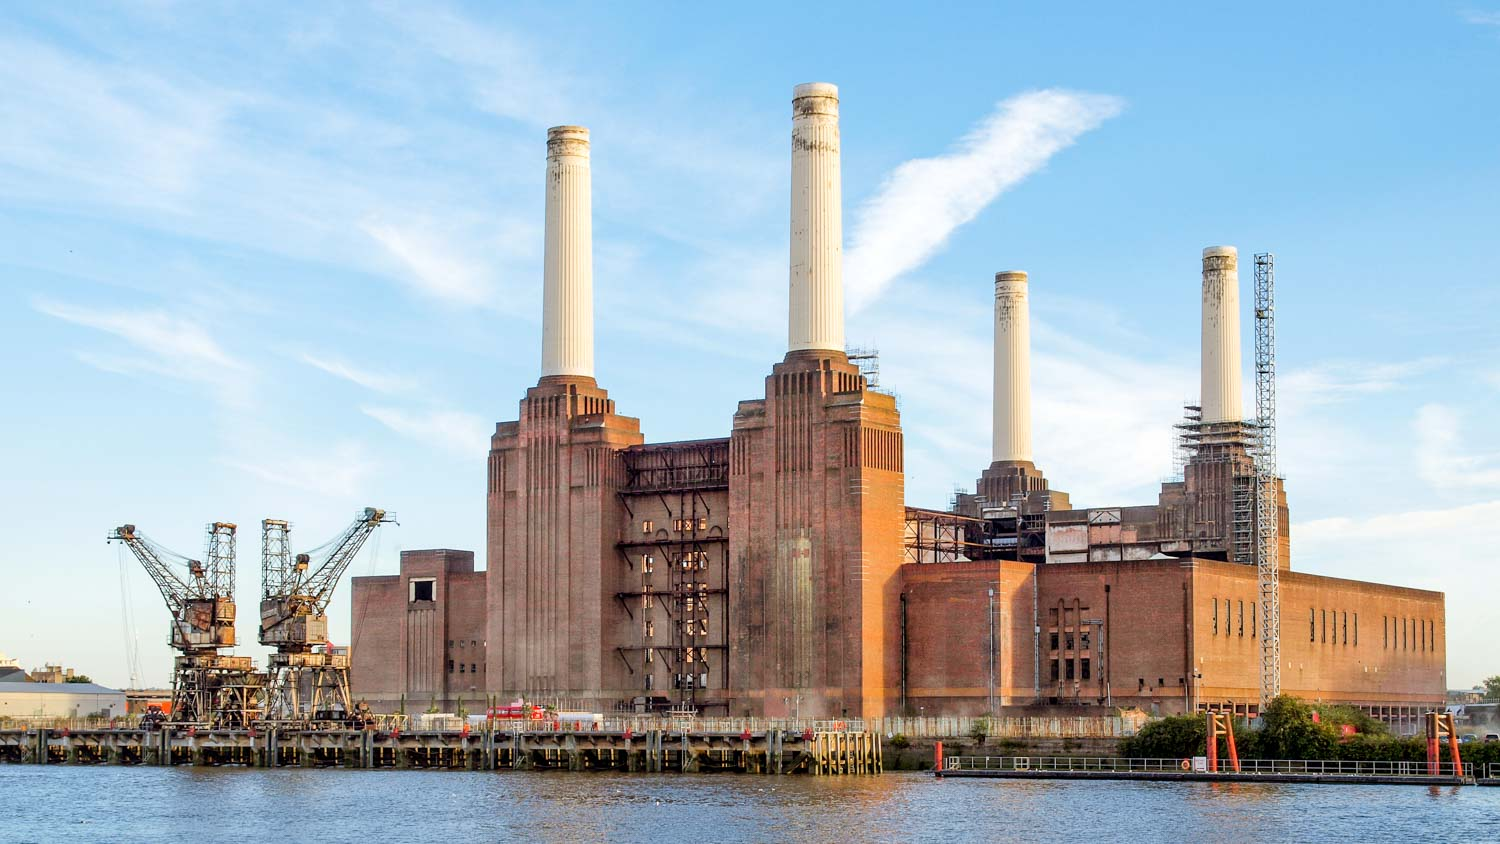 La Battersea Power Station